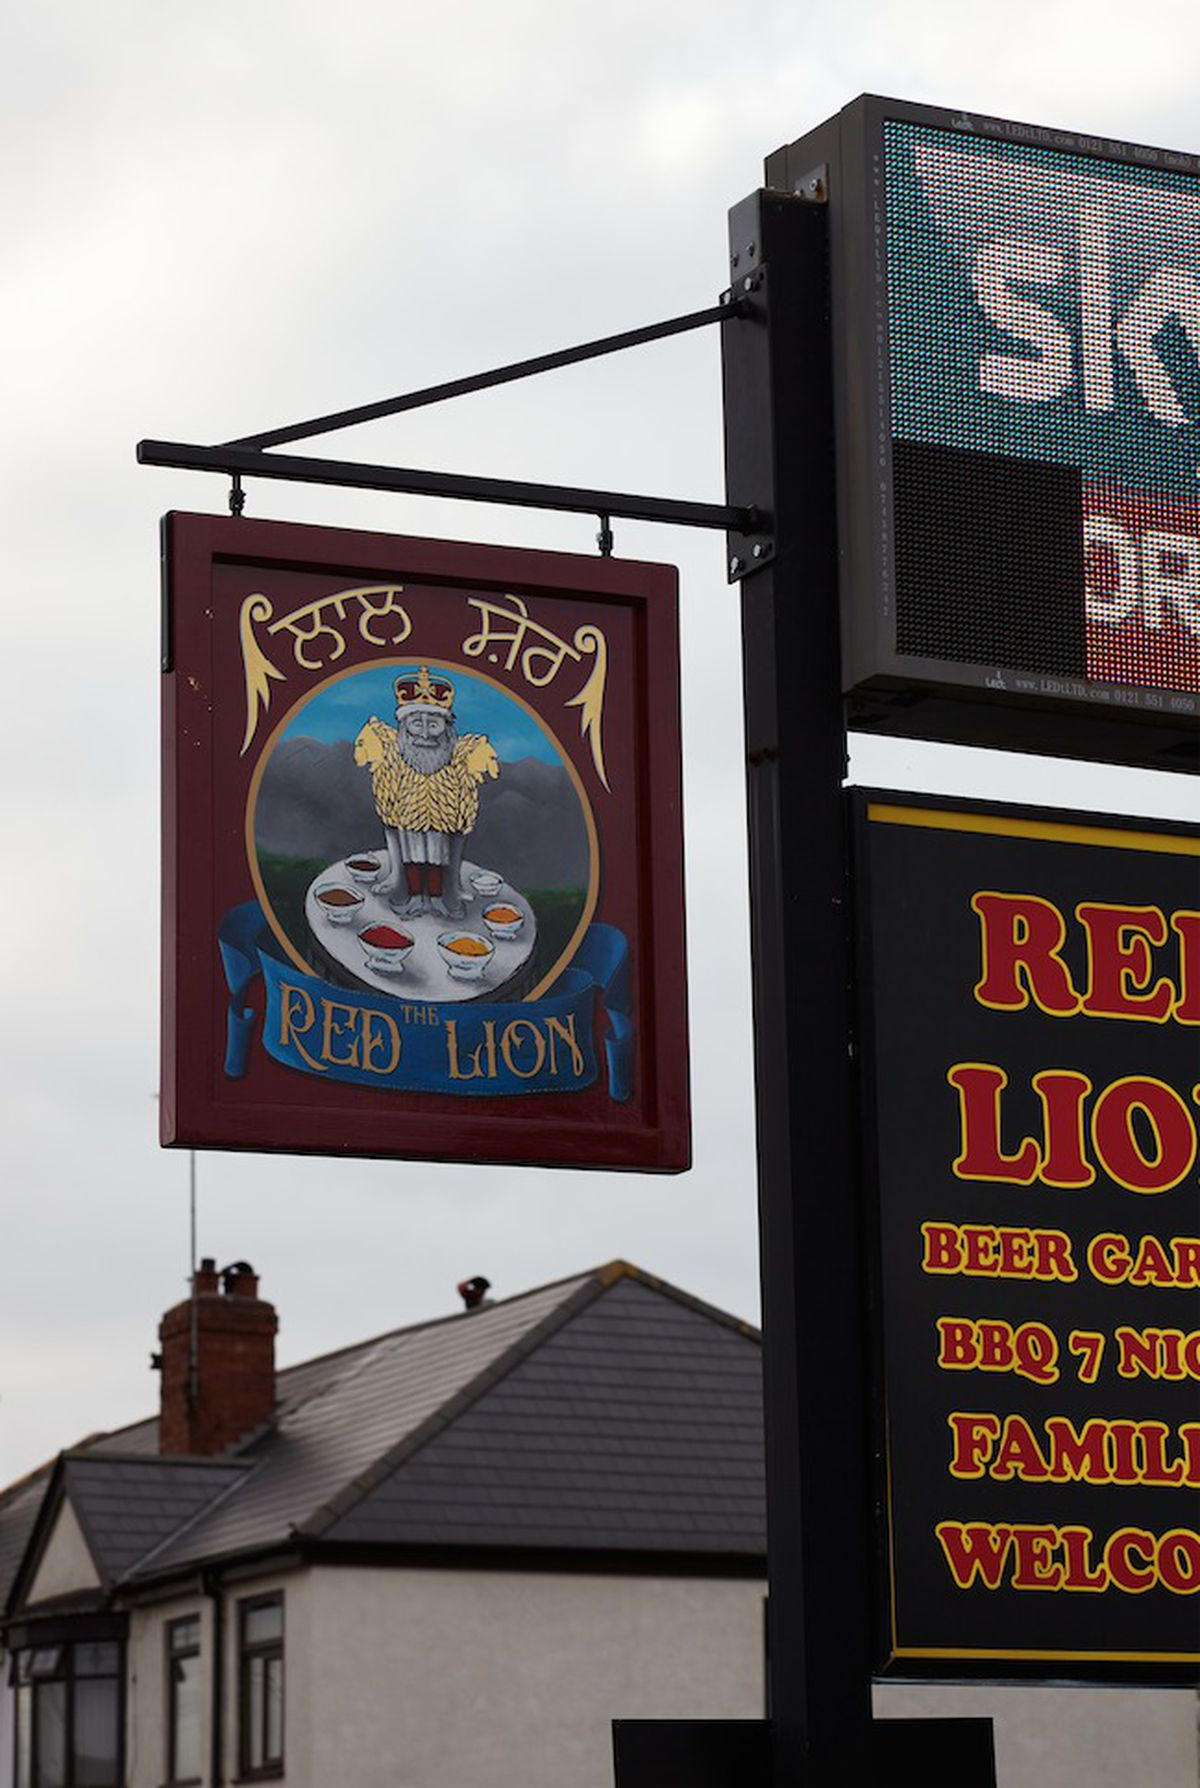 The pub sign is usually see hanging outside the pub in West Bromwich, but is on display in Venice for a month